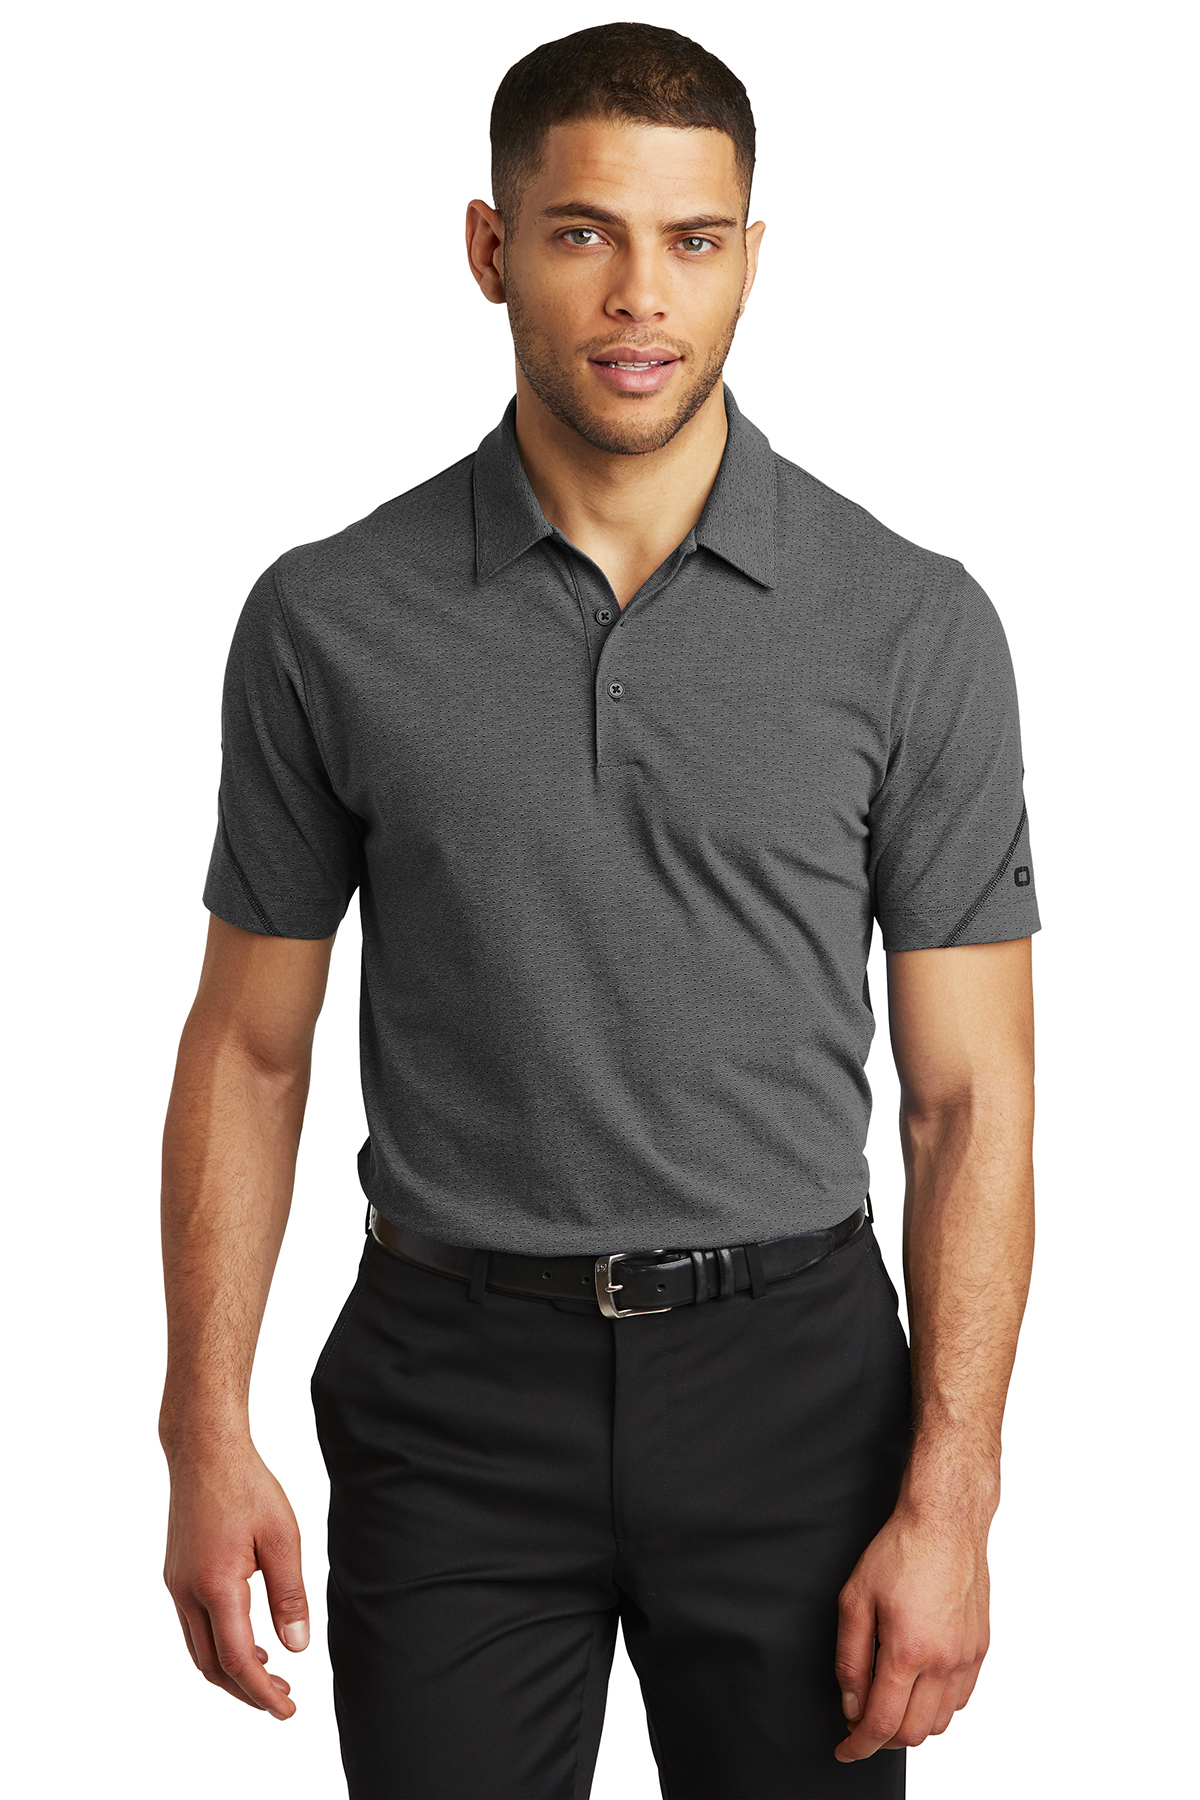 OGIO OG135 - Men's Tread Polo